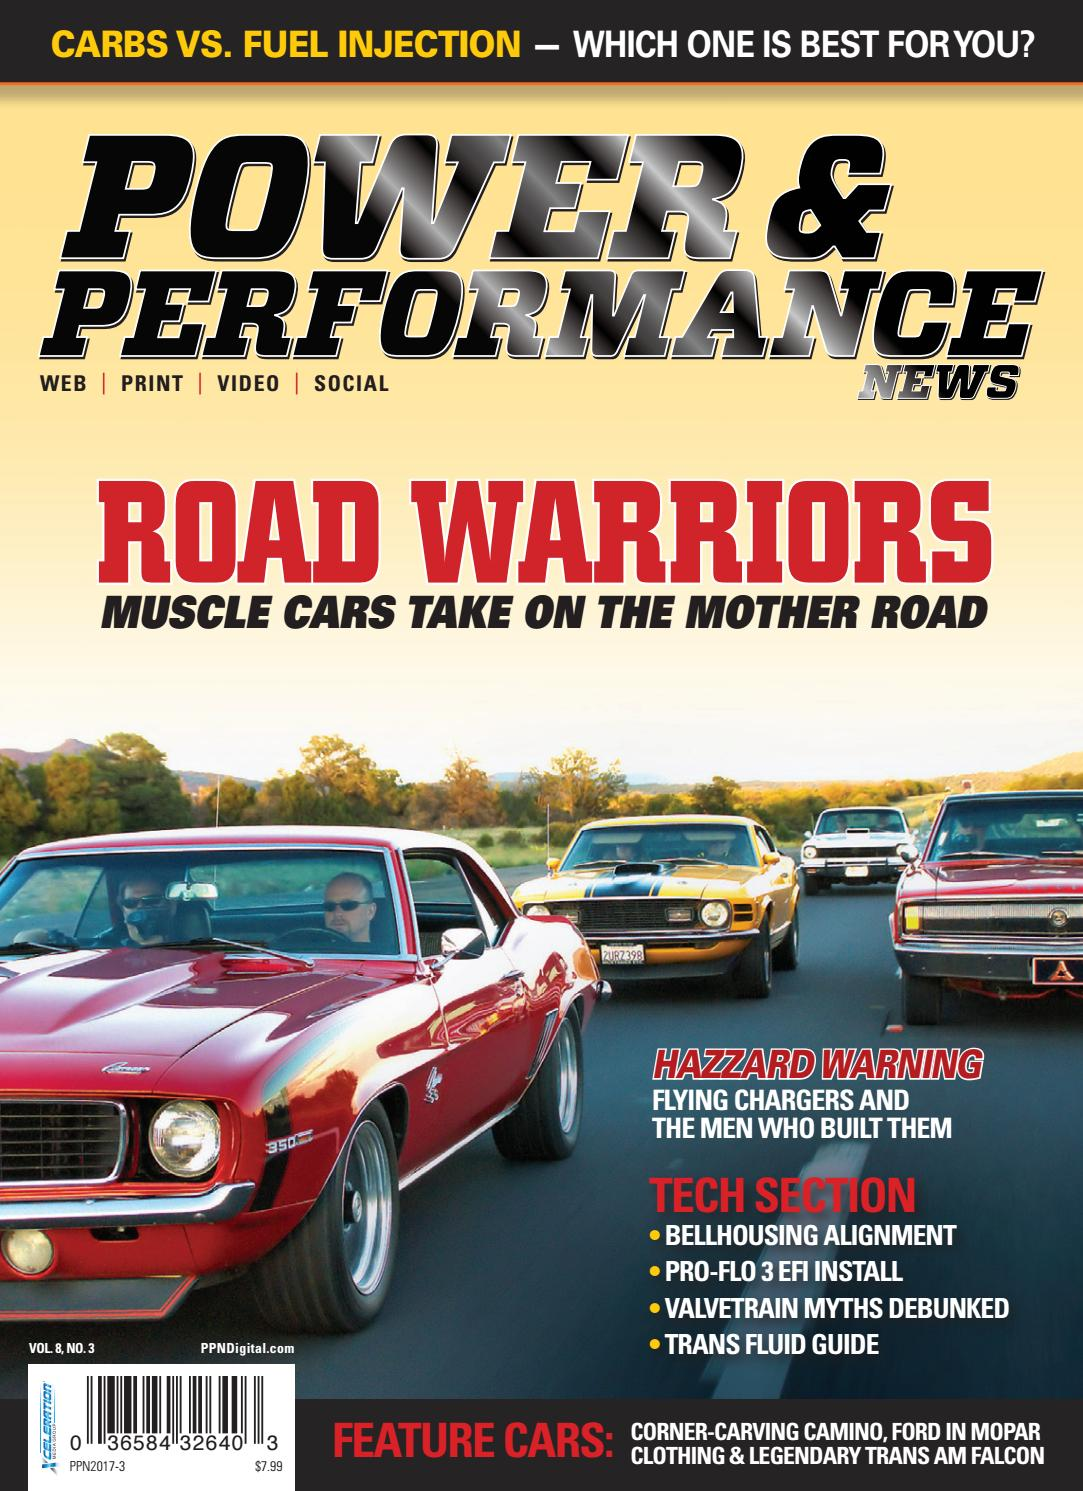 Power Performance News Fall 2016 By Xceleration Media Issuu 196869moparpowerwindowwiringdiagramjpg 2017